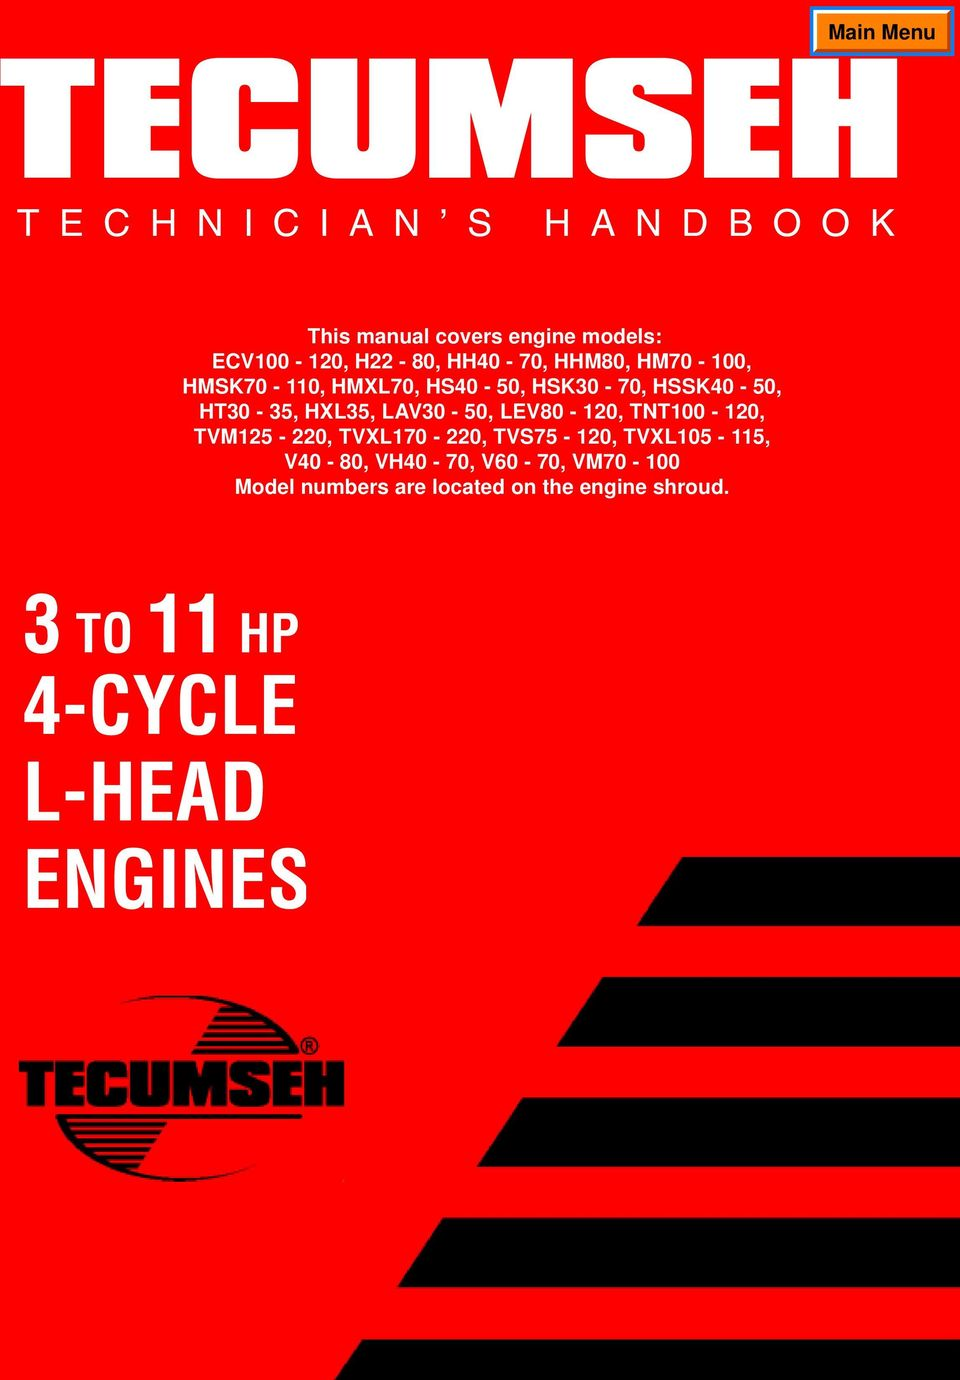 Tecumseh Motor Wiring Diagram Stator Wires On Hp Briggs And Stratton 1965 Engine To Cycle L Head Engines Pdf Transcription